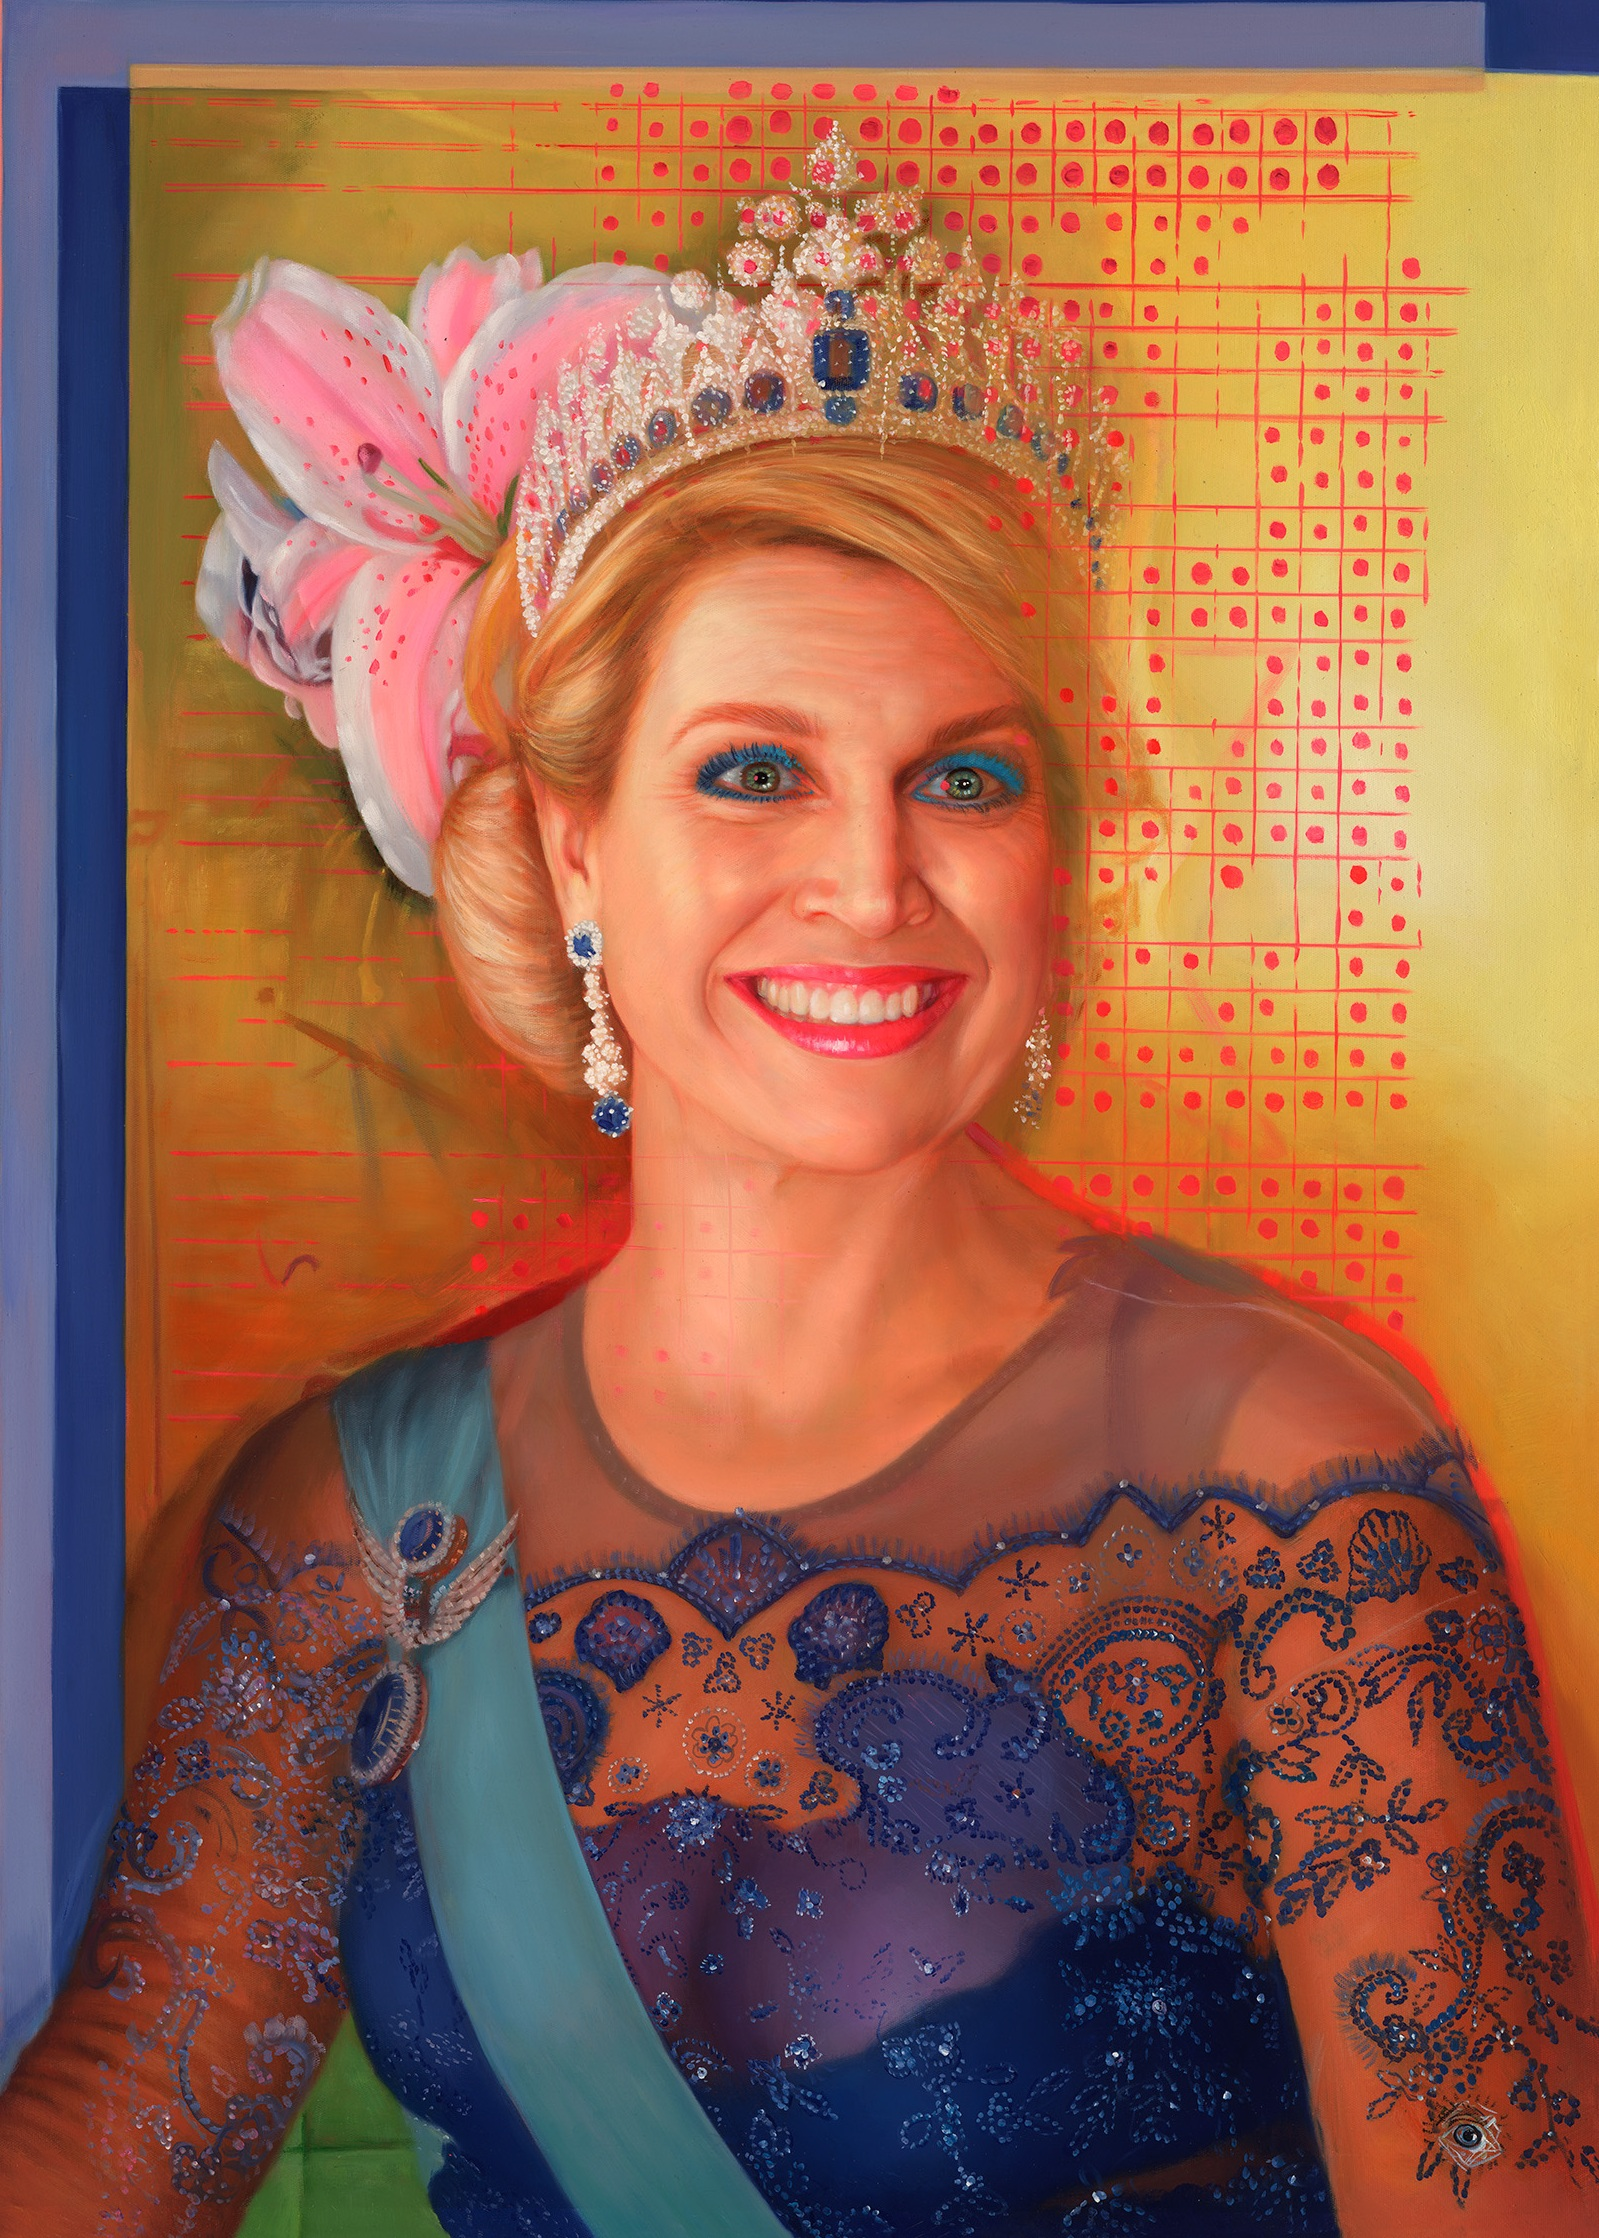 Sapphire | Queen Maxima of the netherlands